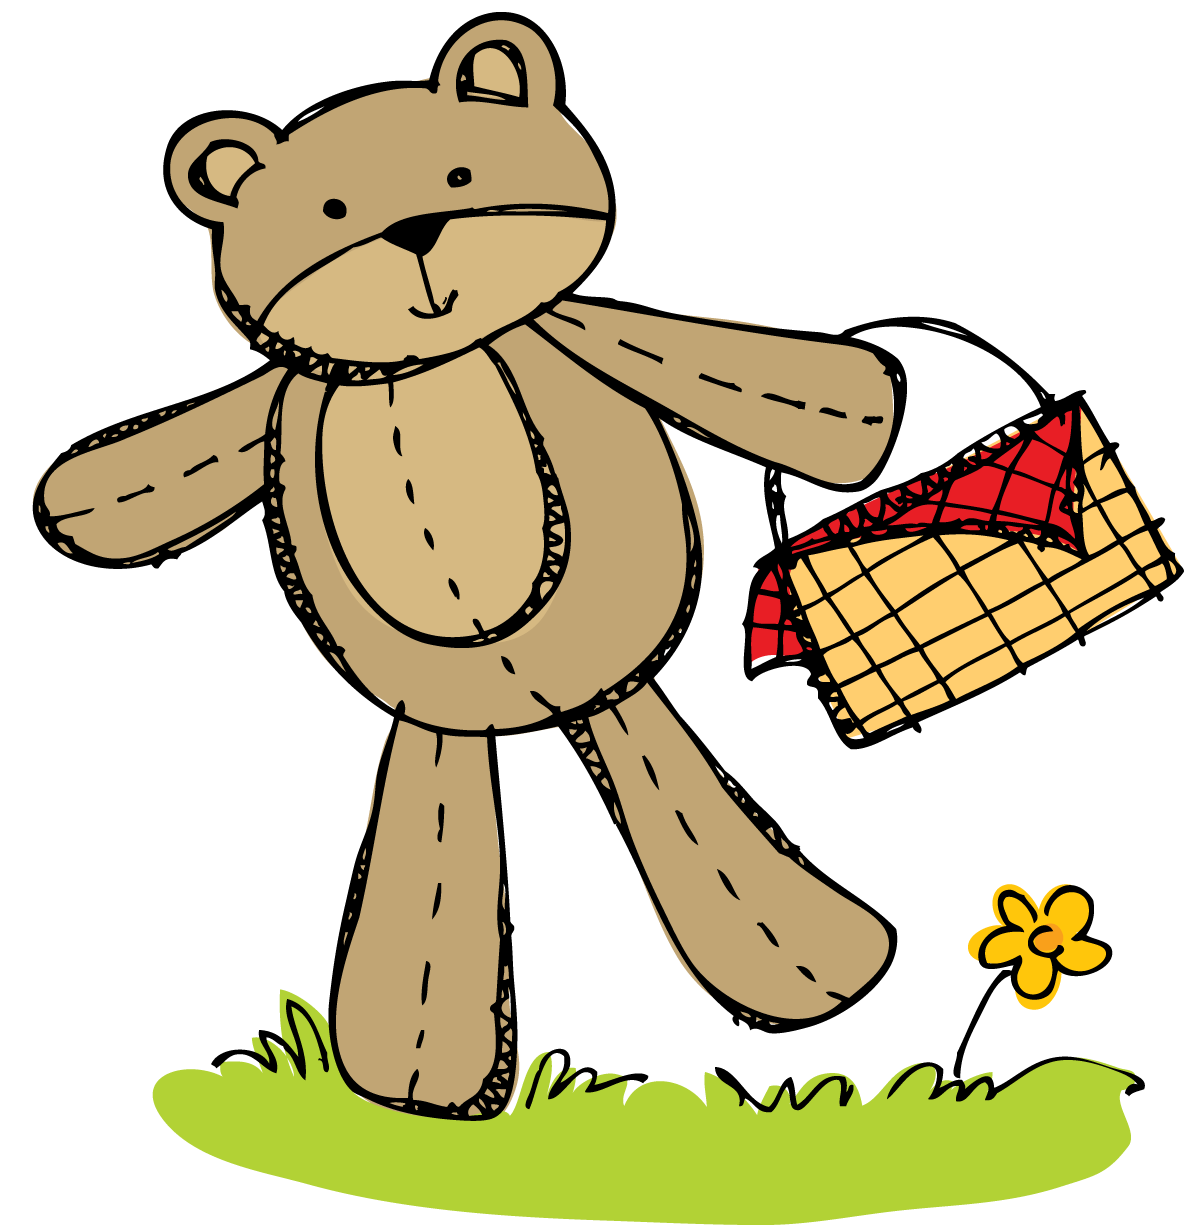 Cute bear april clipart svg stock Teddy Bear Picnic Clipart - Clipart Kid svg stock